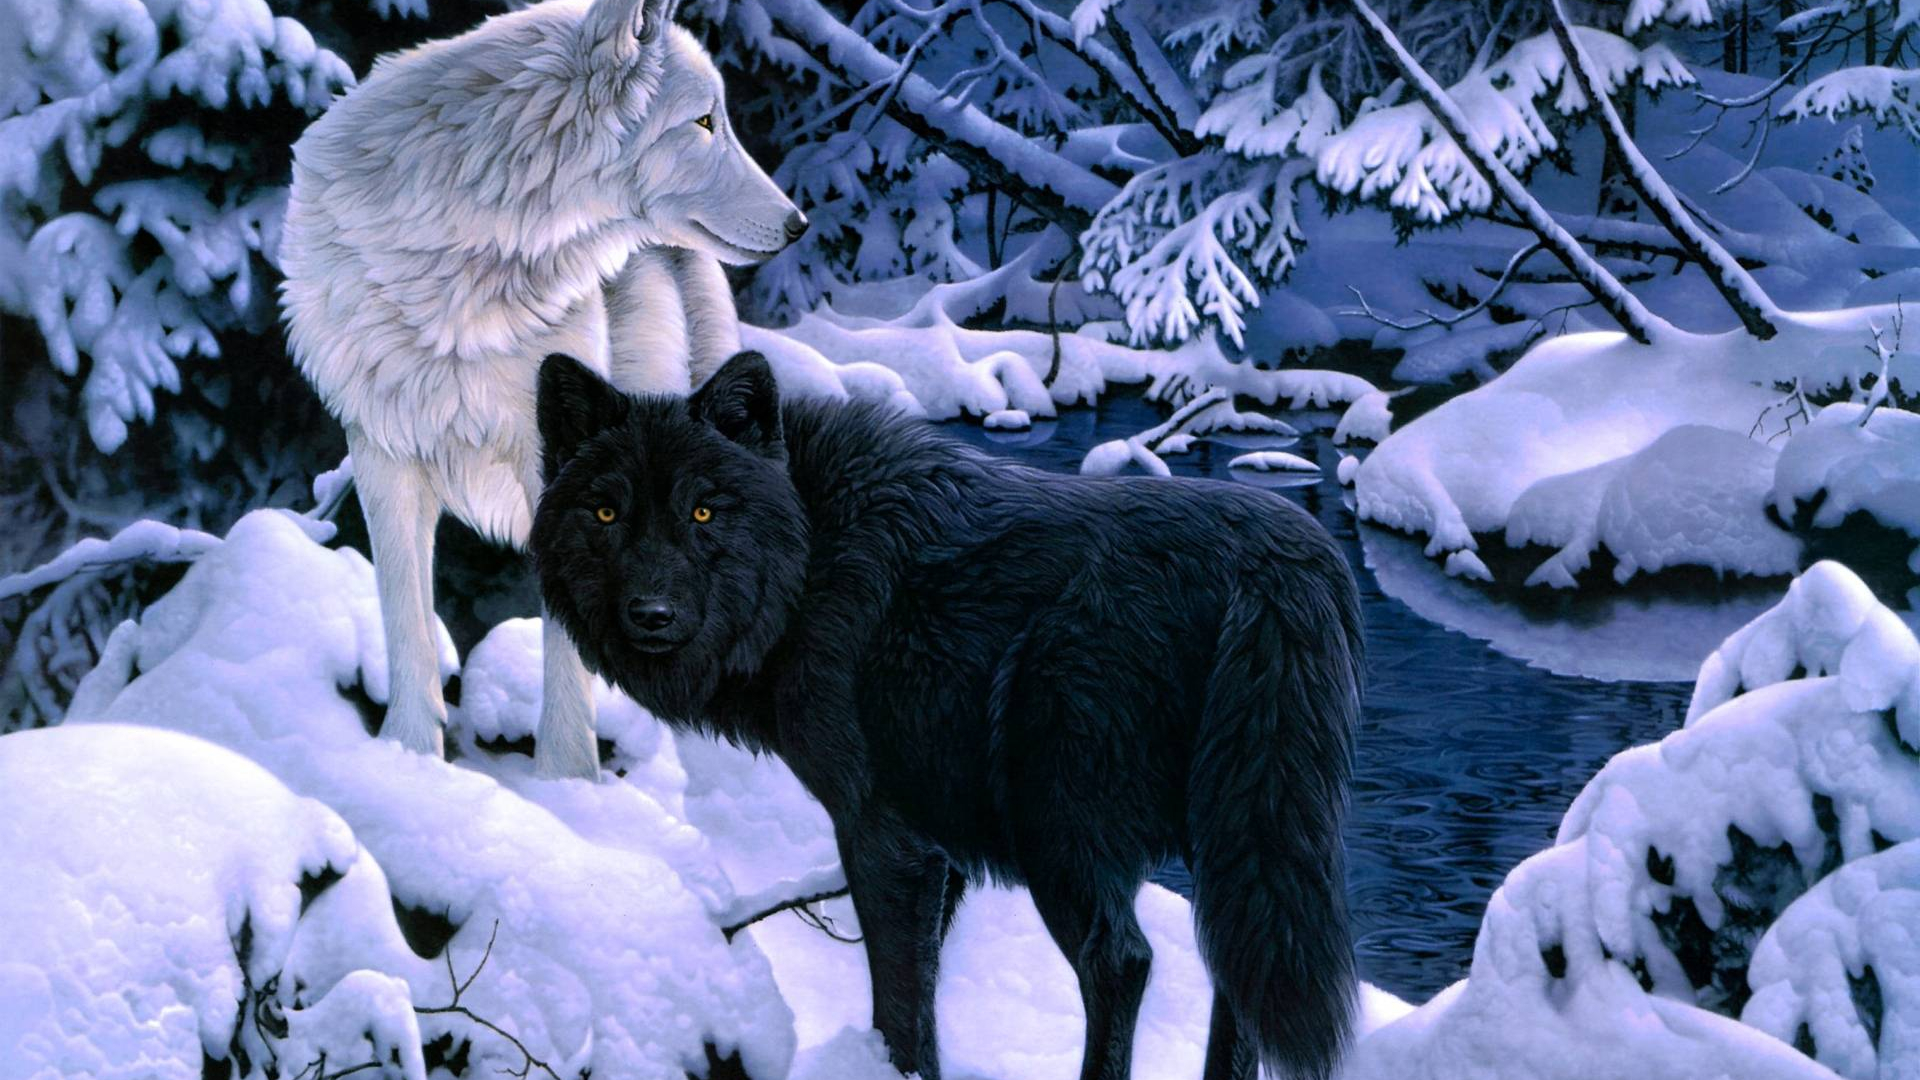 Free Download Black And White Wolf Wallpapers White And Black 1920x1200 For Your Desktop Mobile Tablet Explore 44 Black Wolves Wallpaper Wolf Wallpapers And Screensavers Images Of Wolves For